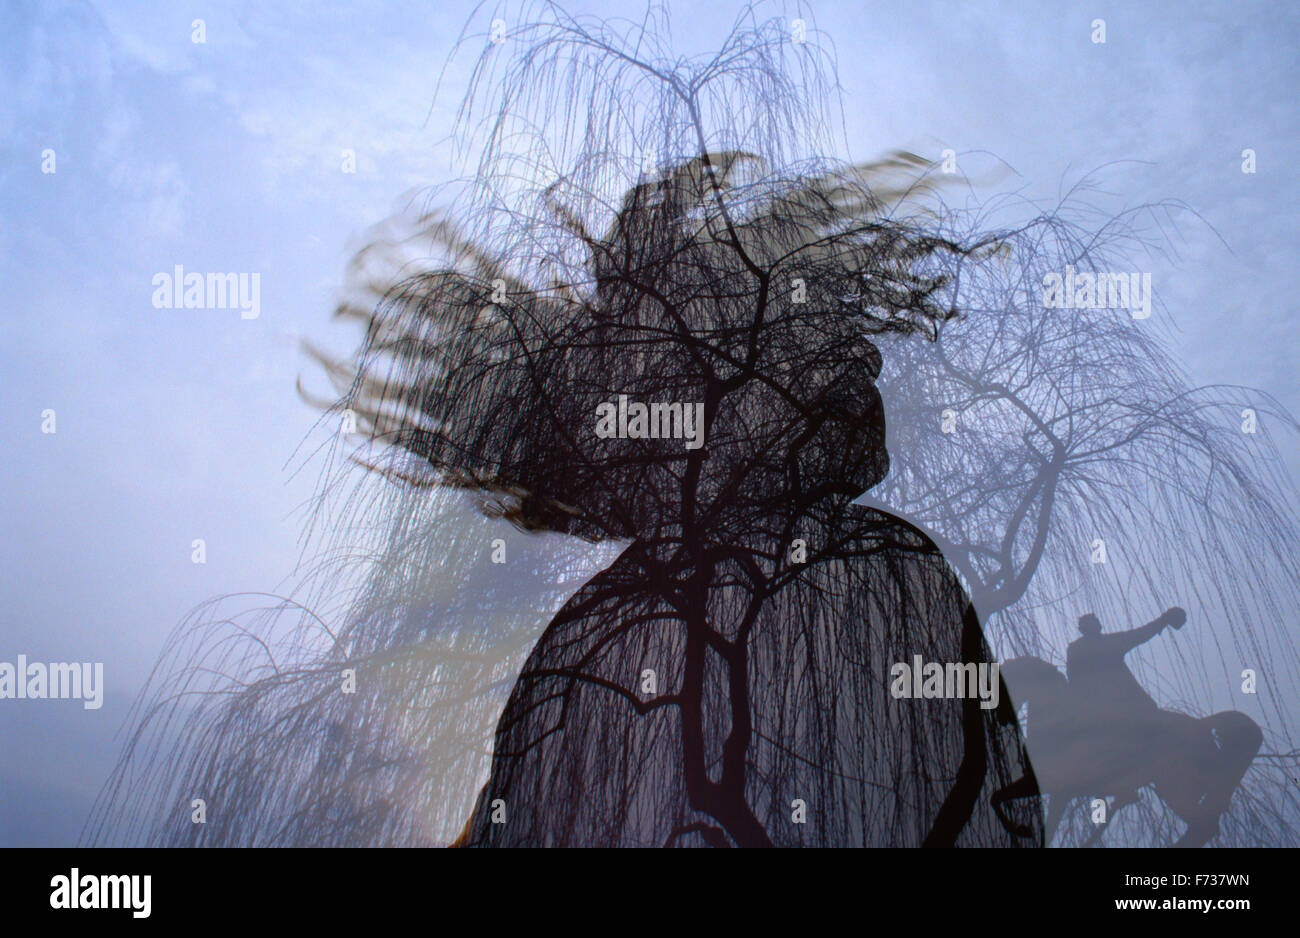 Double exposure of a young man twirling and tossing his hair with silhouette of an equestrian statue under leafless - Stock Image